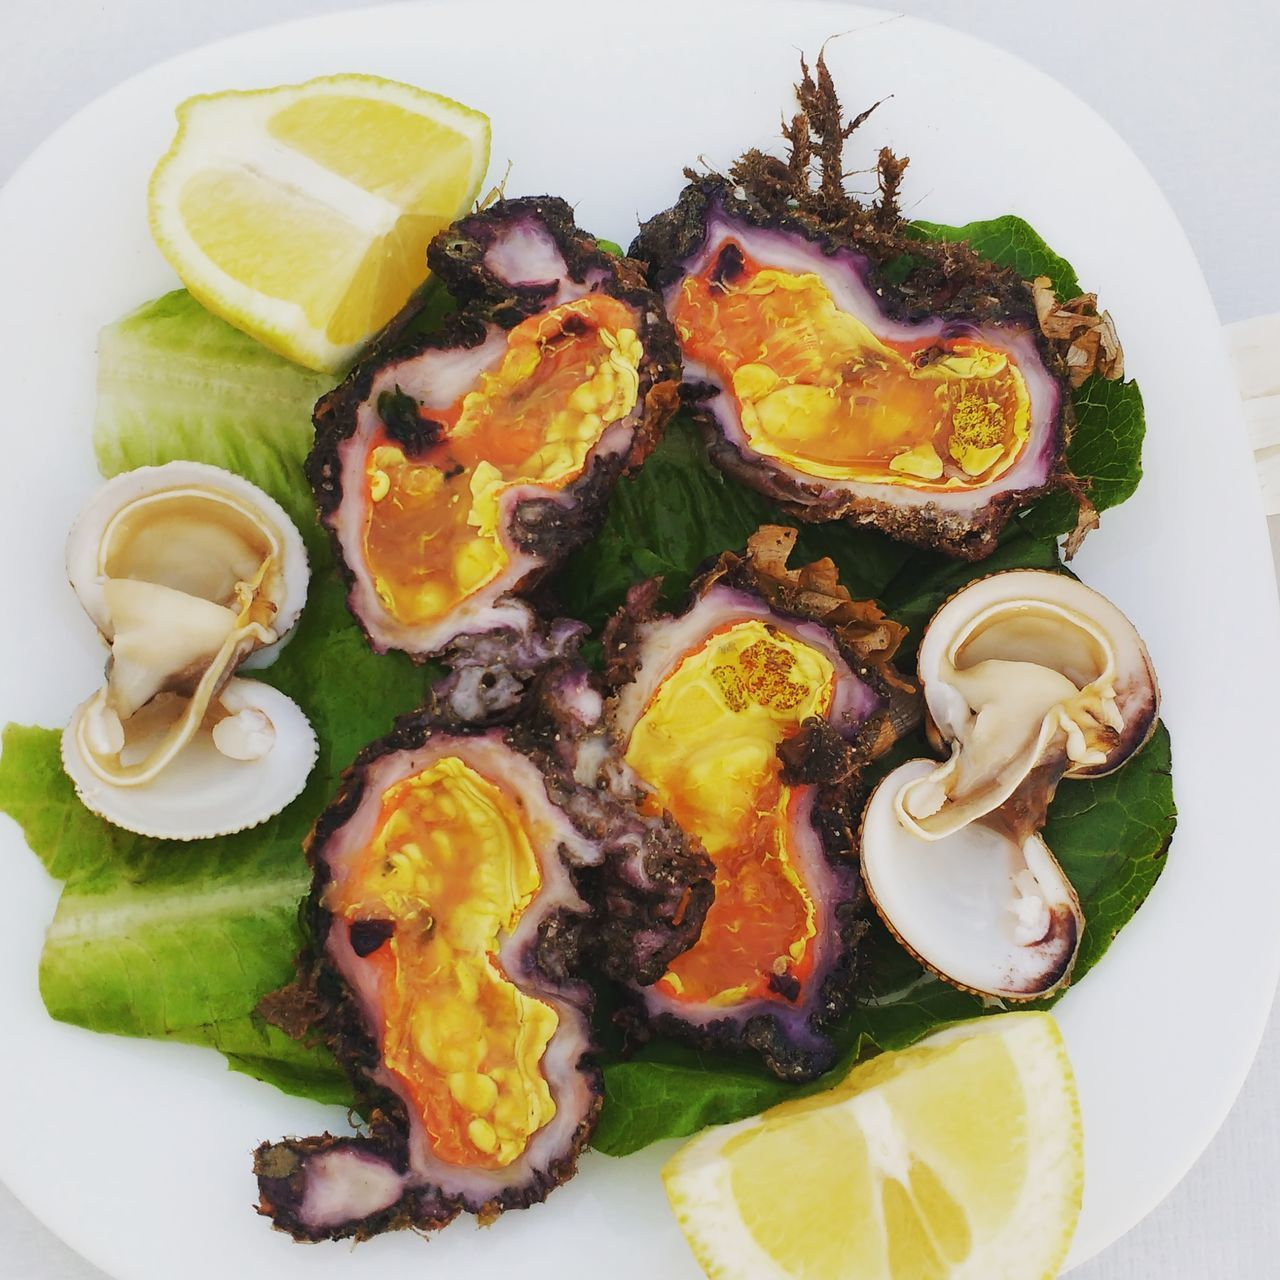 vibrant colours of Greek oysters Greek Seafoods Giant Clams SHELLFISH  Kalymnos Fresh Sea Water Taste Fresh From The Sea Fouskes Fousces Violet Uovo Del Mare Clams Unusual Seafood Orange Color Orange Seafood Rock Rocky Seafood Like An Oyster Like Sea Urchin Delicious Enjoy Sea Food Vibrant Colours Visual Feast